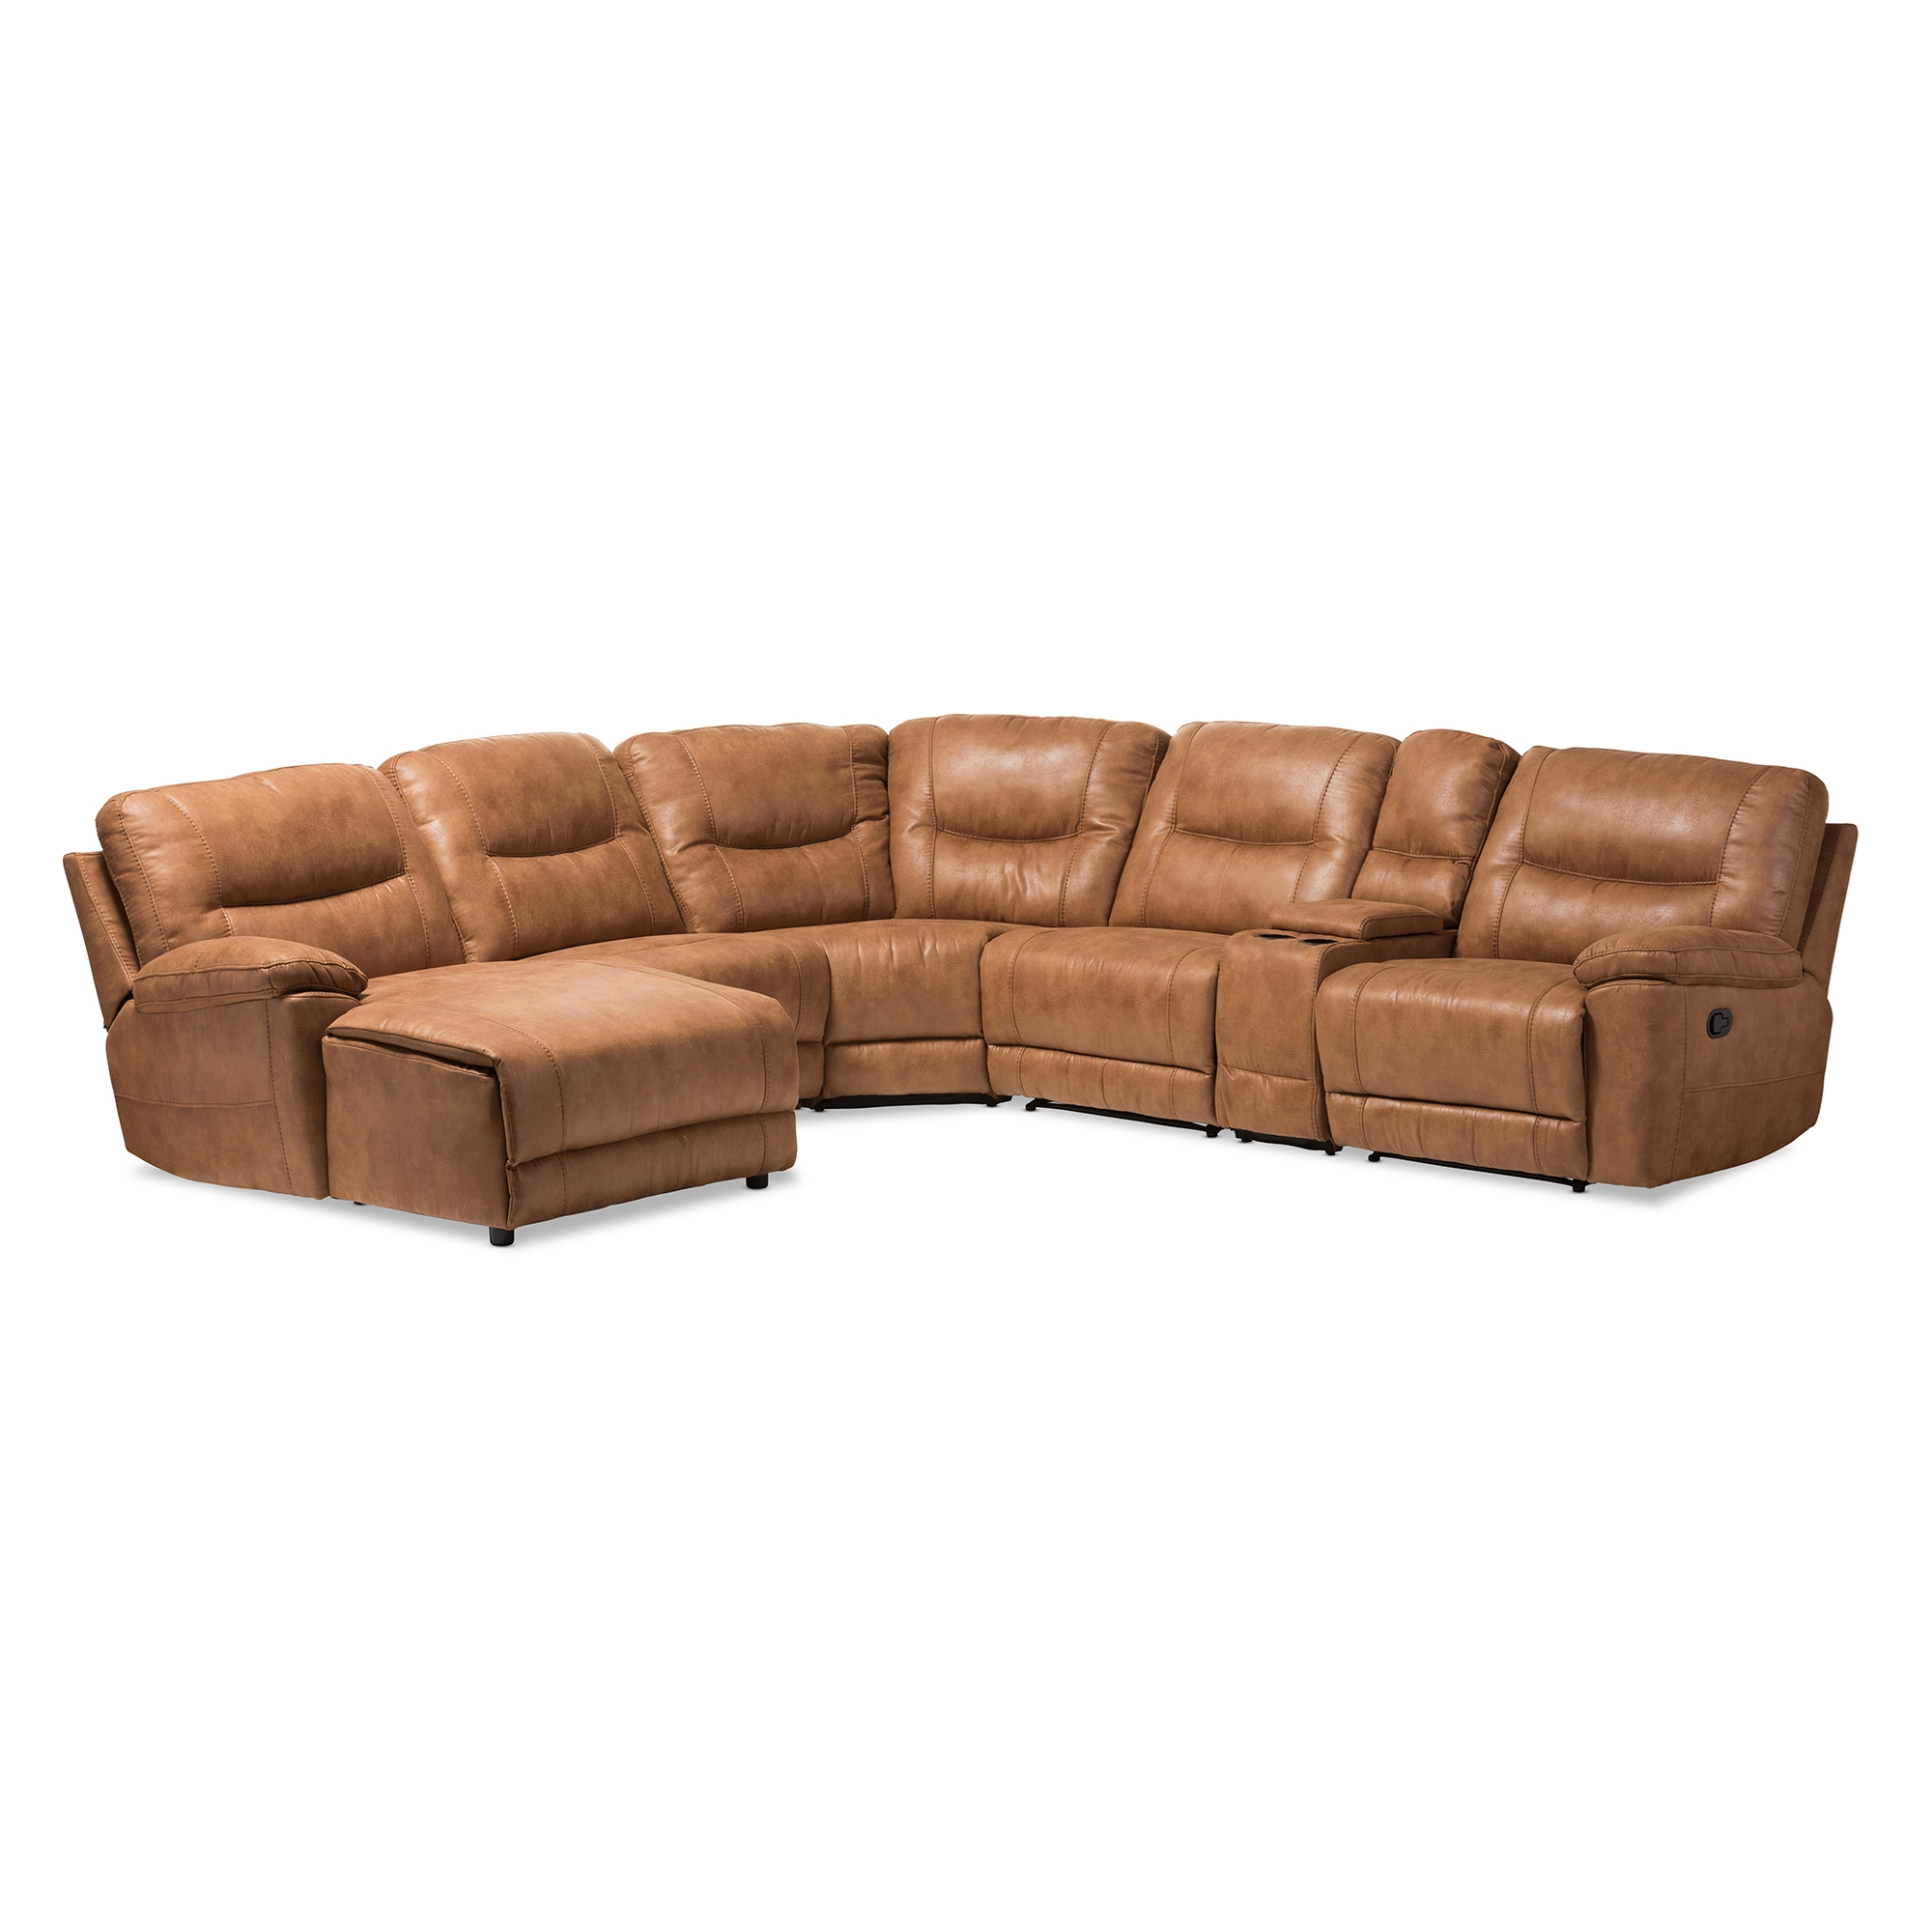 Baxton Studio Mistral Modern and Contemporary Light Brown Palomino Suede 6-Piece Sectional with Recliners Corner Lounge Suite  sc 1 st  Baxton Studio Outlet : reclining lounge suites - islam-shia.org